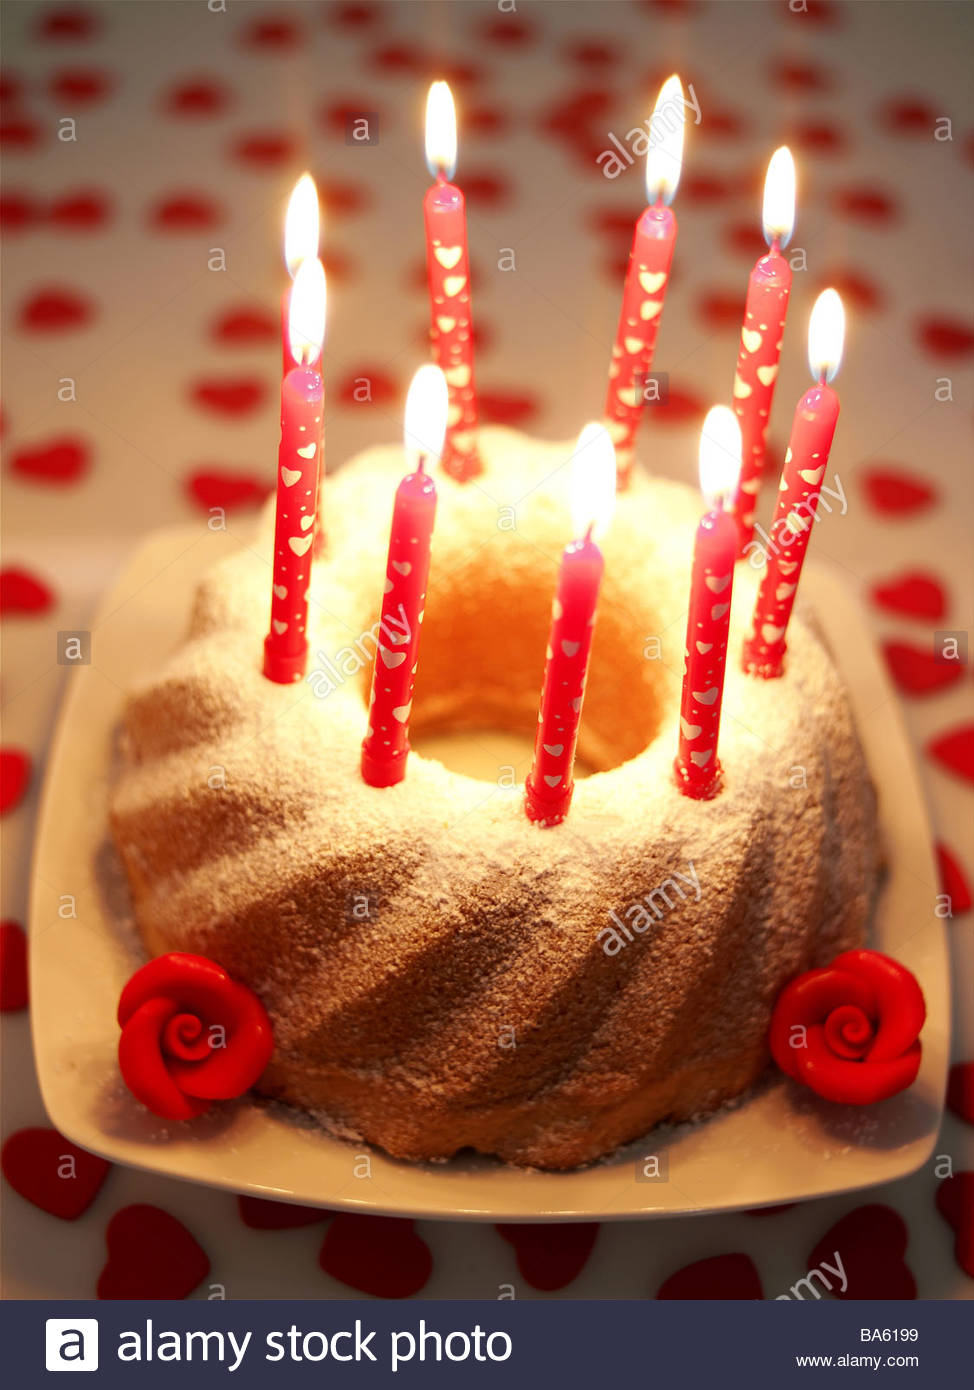 picture of birthday cake with burning candles ; birthday-cakes-candles-series-burn-food-pastries-forecastle-merchandise-BA6199